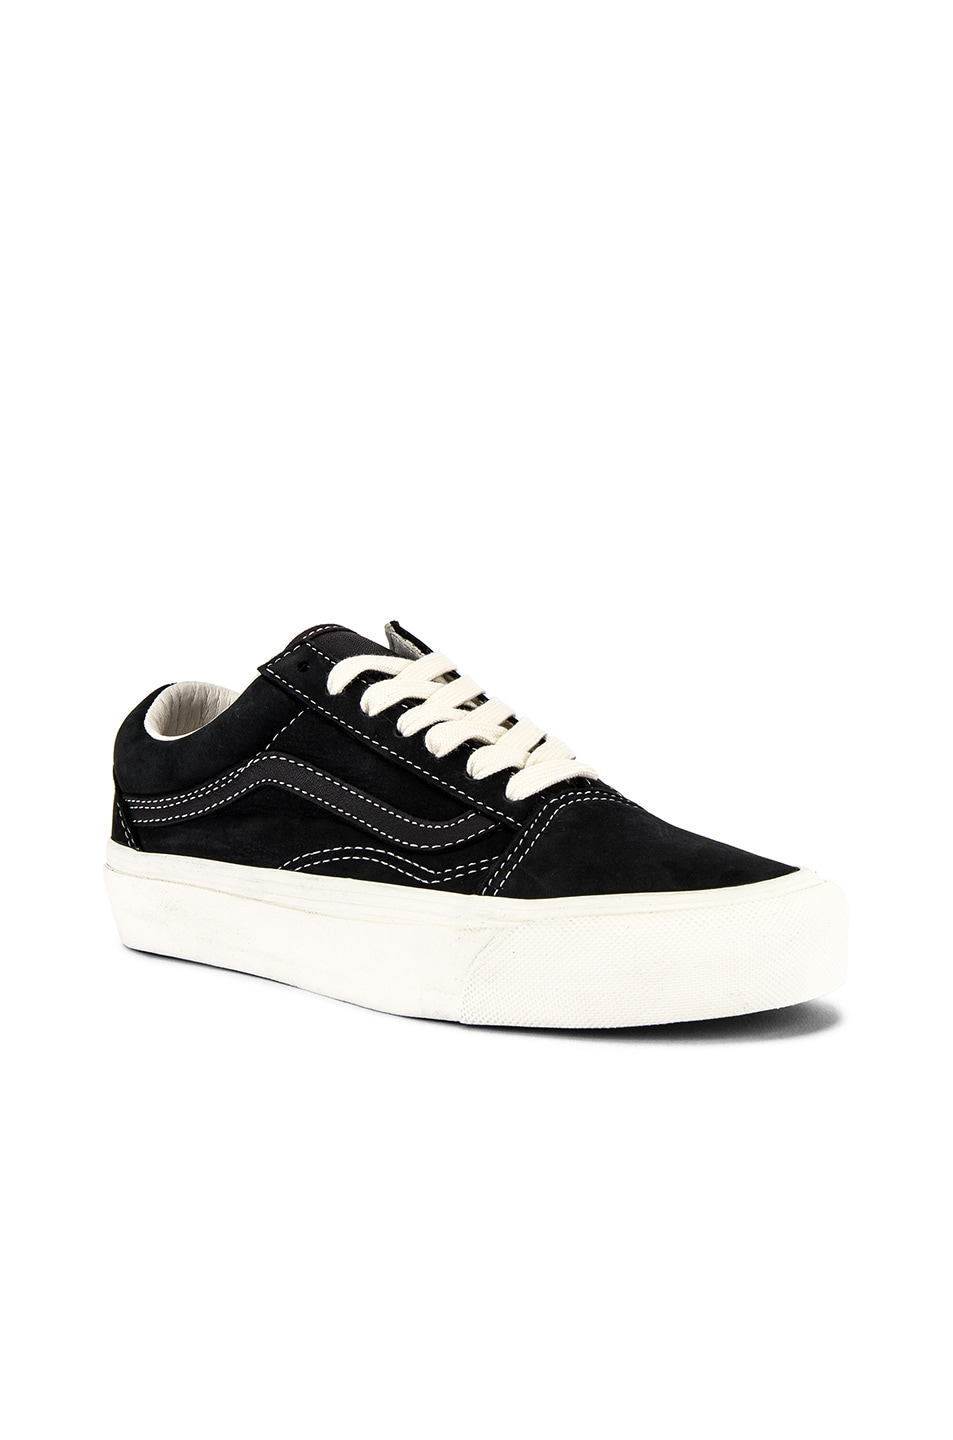 Image 2 of Vans Vault OG Old Skool LX in Raven & Black